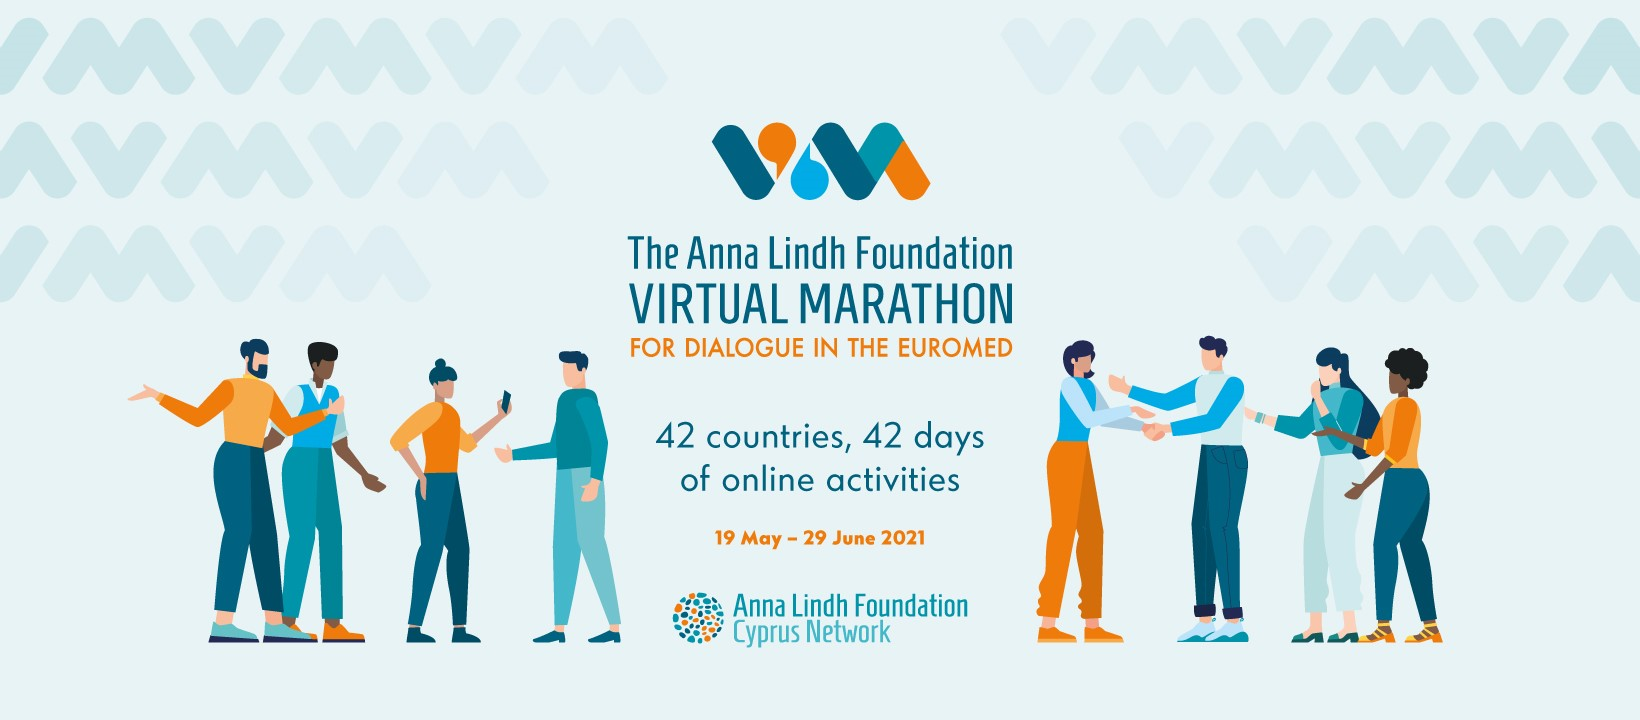 Launch of the Anna Lindh Foundation Virtual Marathon for Dialogue